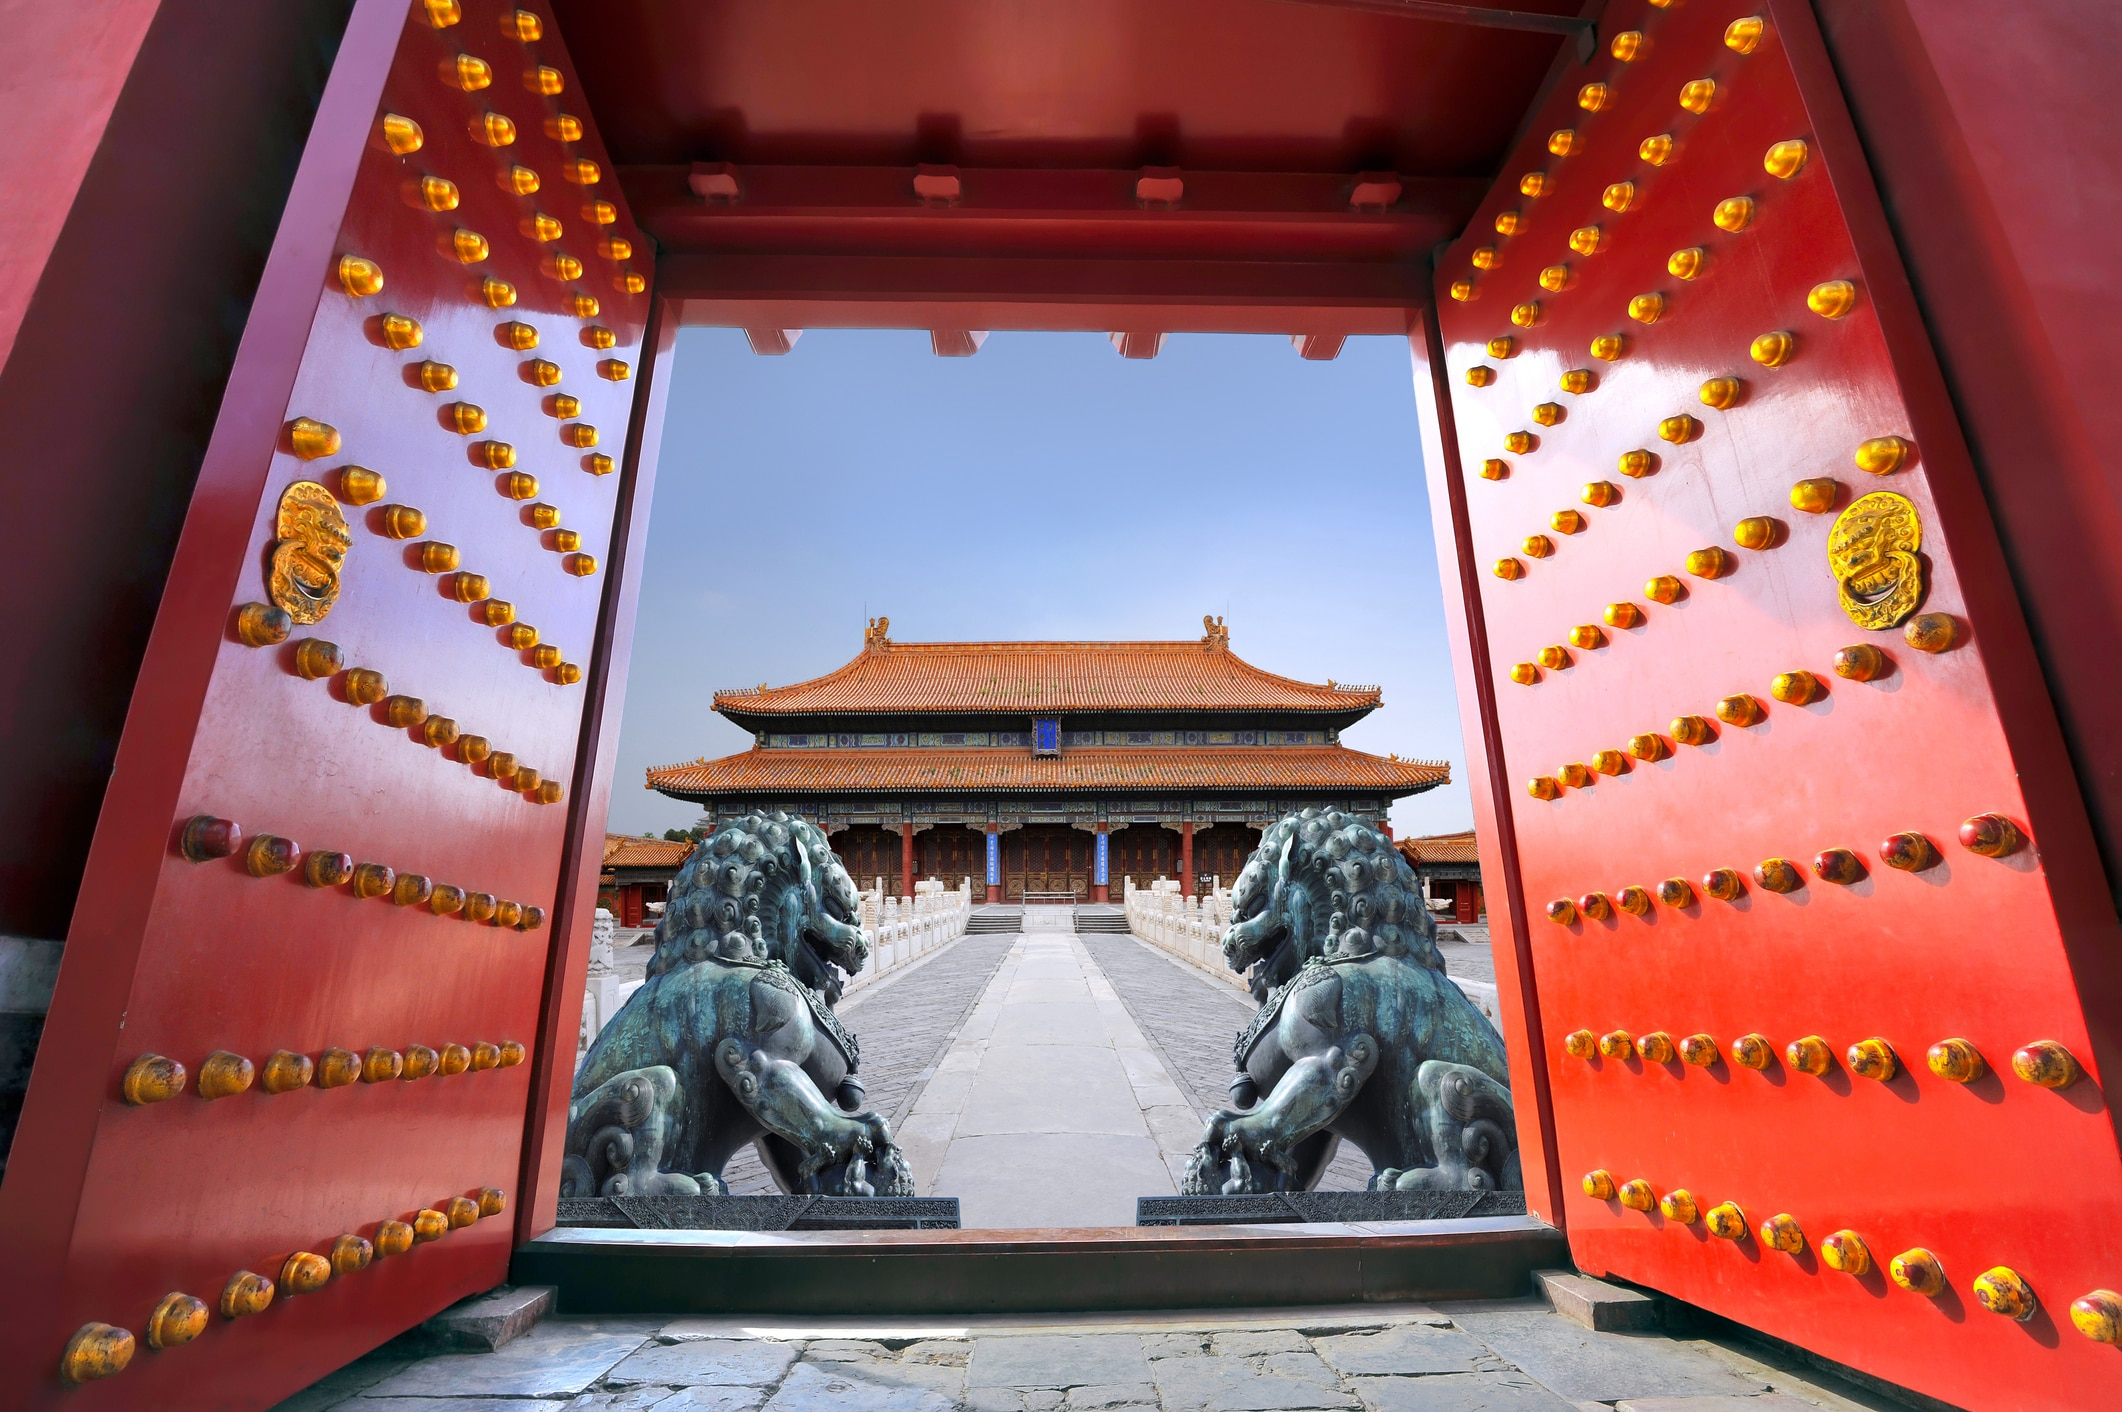 Beijing: Travel to the Center of China's Powerful Dynasties